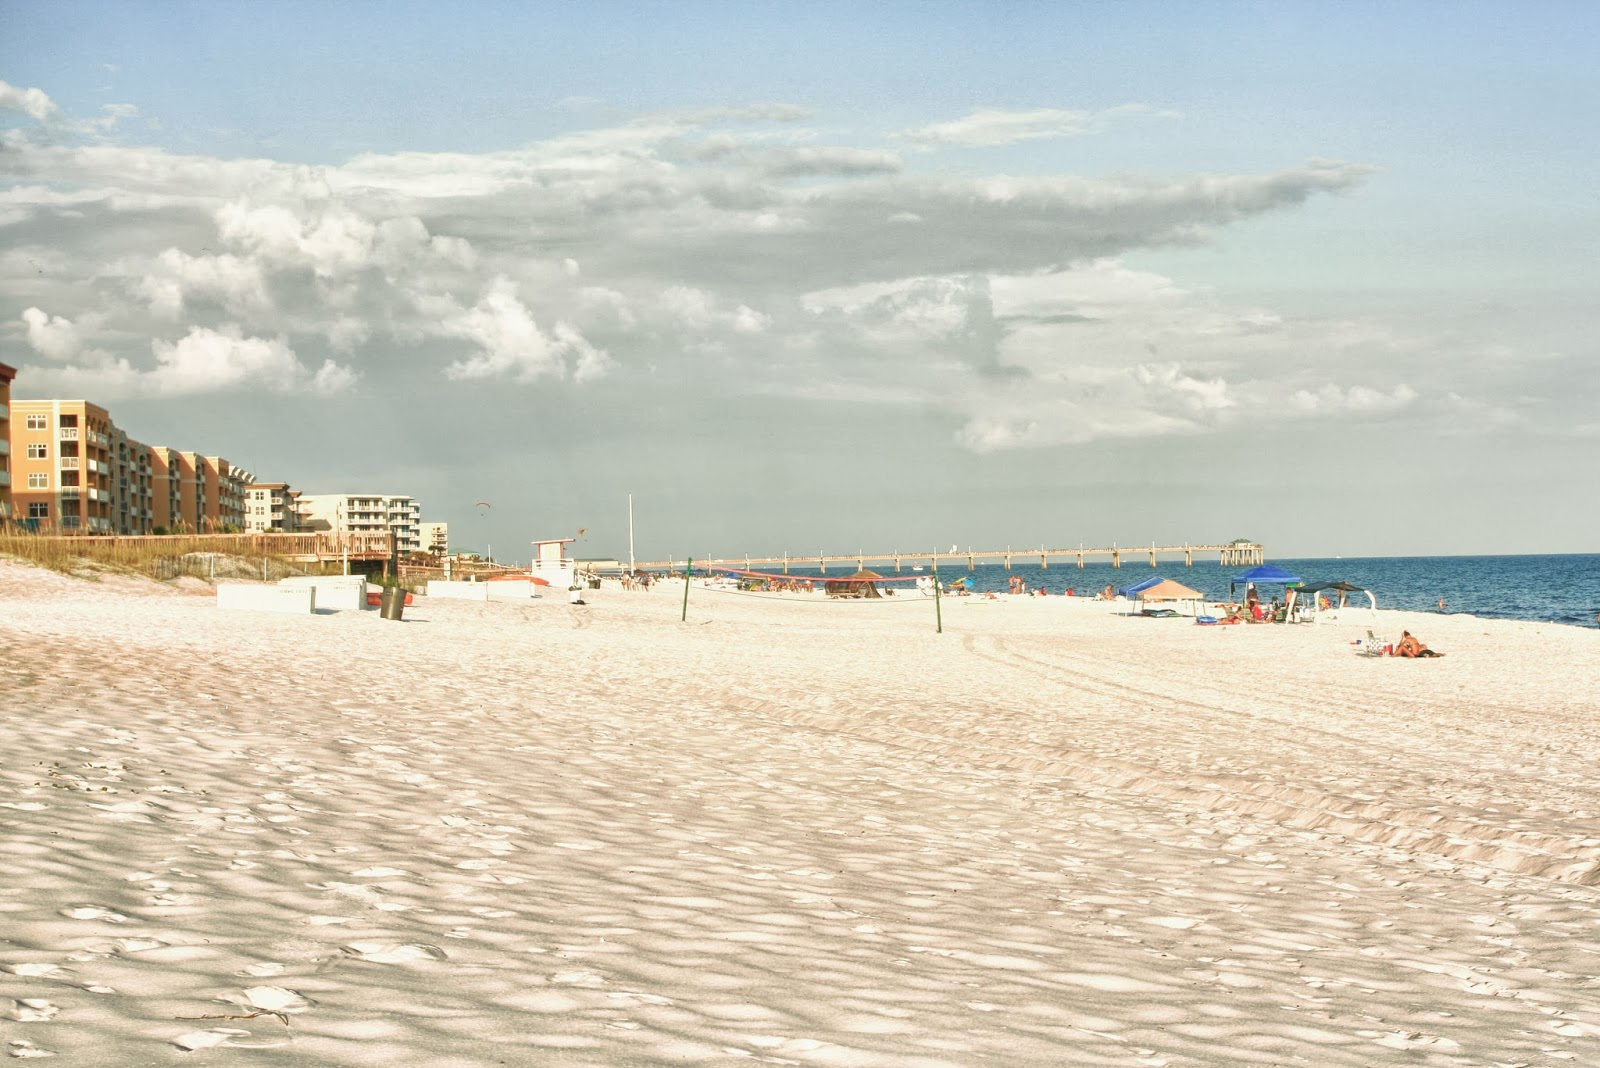 Florida Is Renown For Its White Sand Beaches Image Source Www Flickr